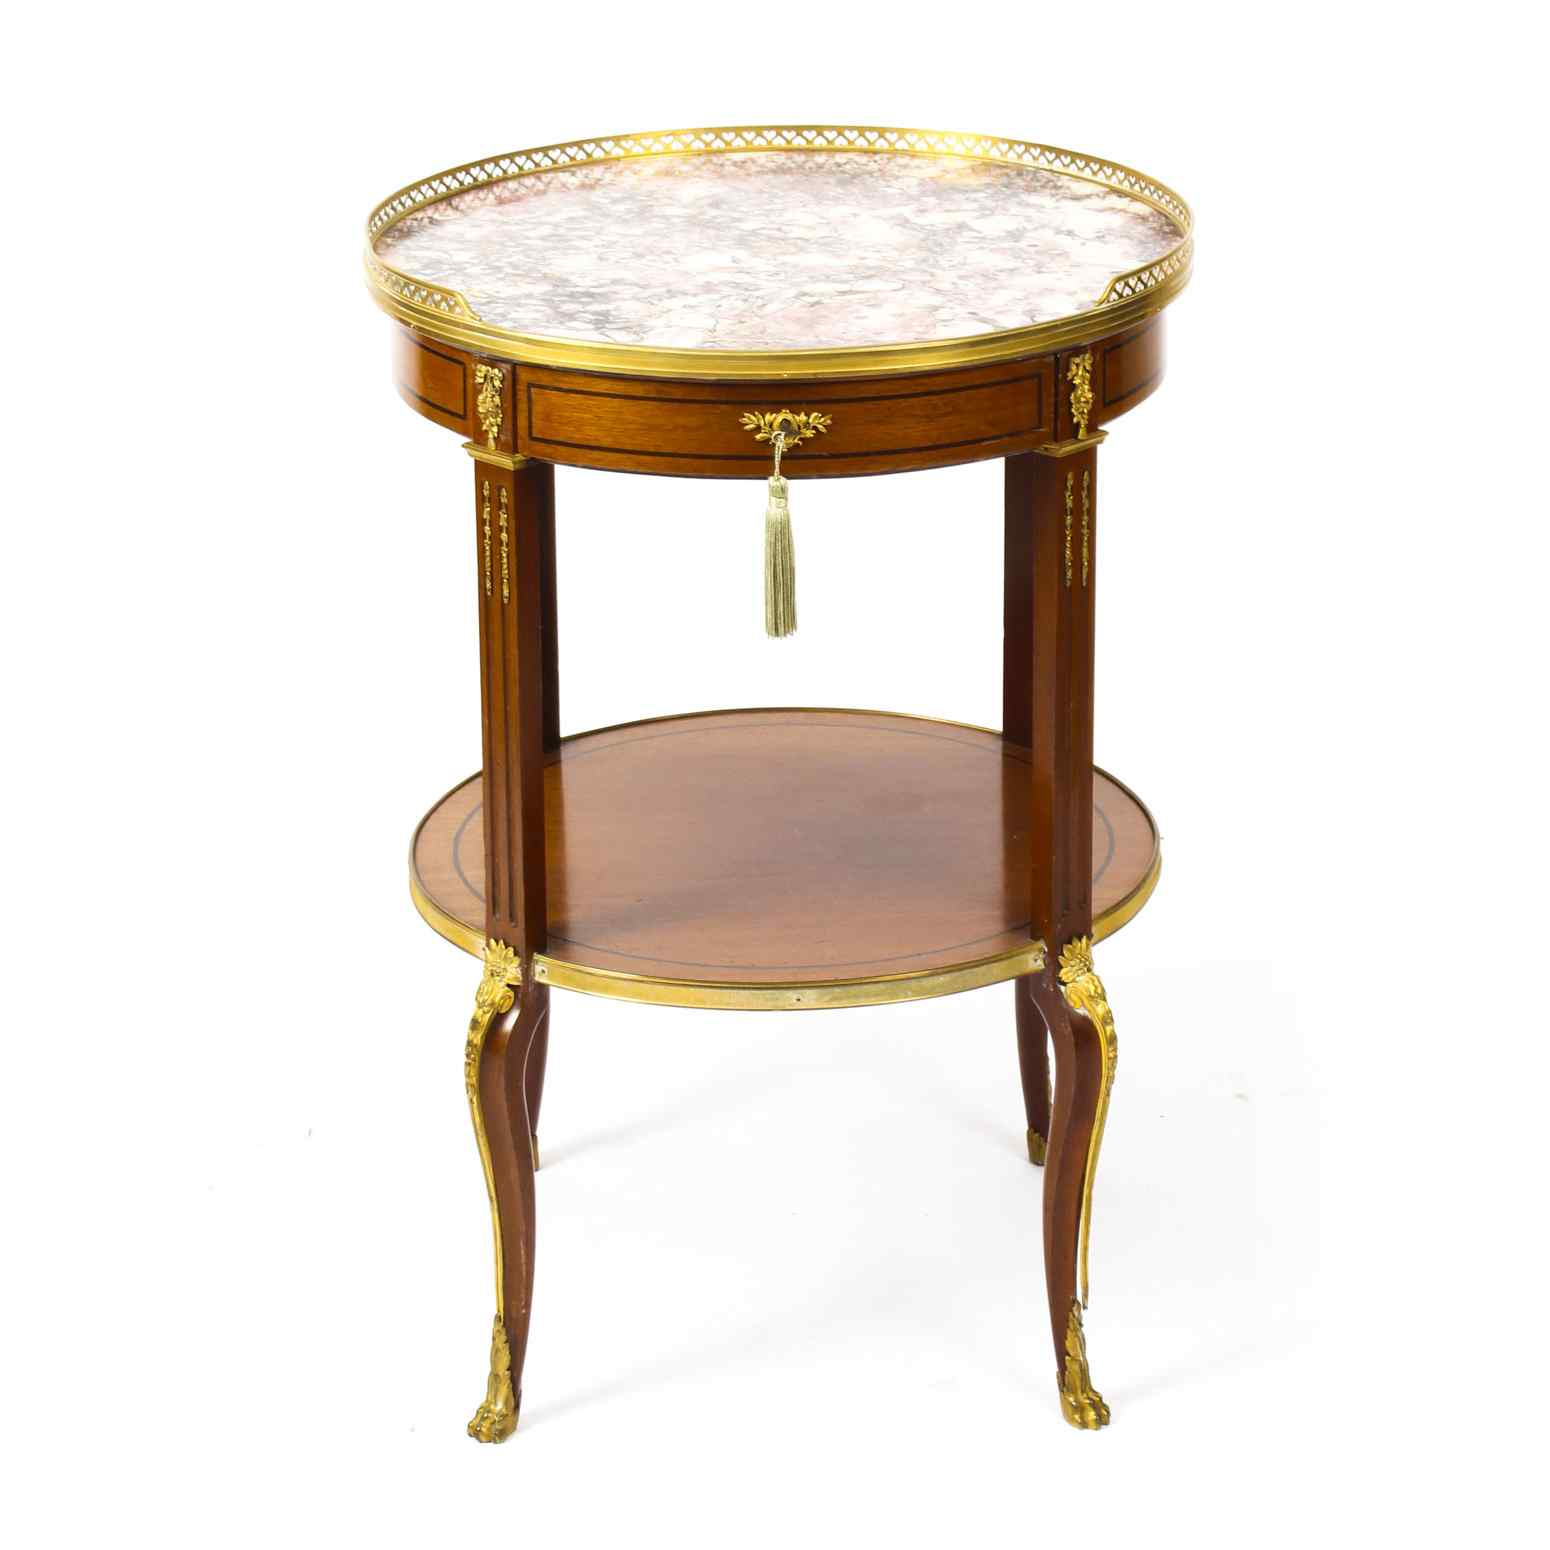 Antique French Marble & Ormolu Occasional Table 19th C